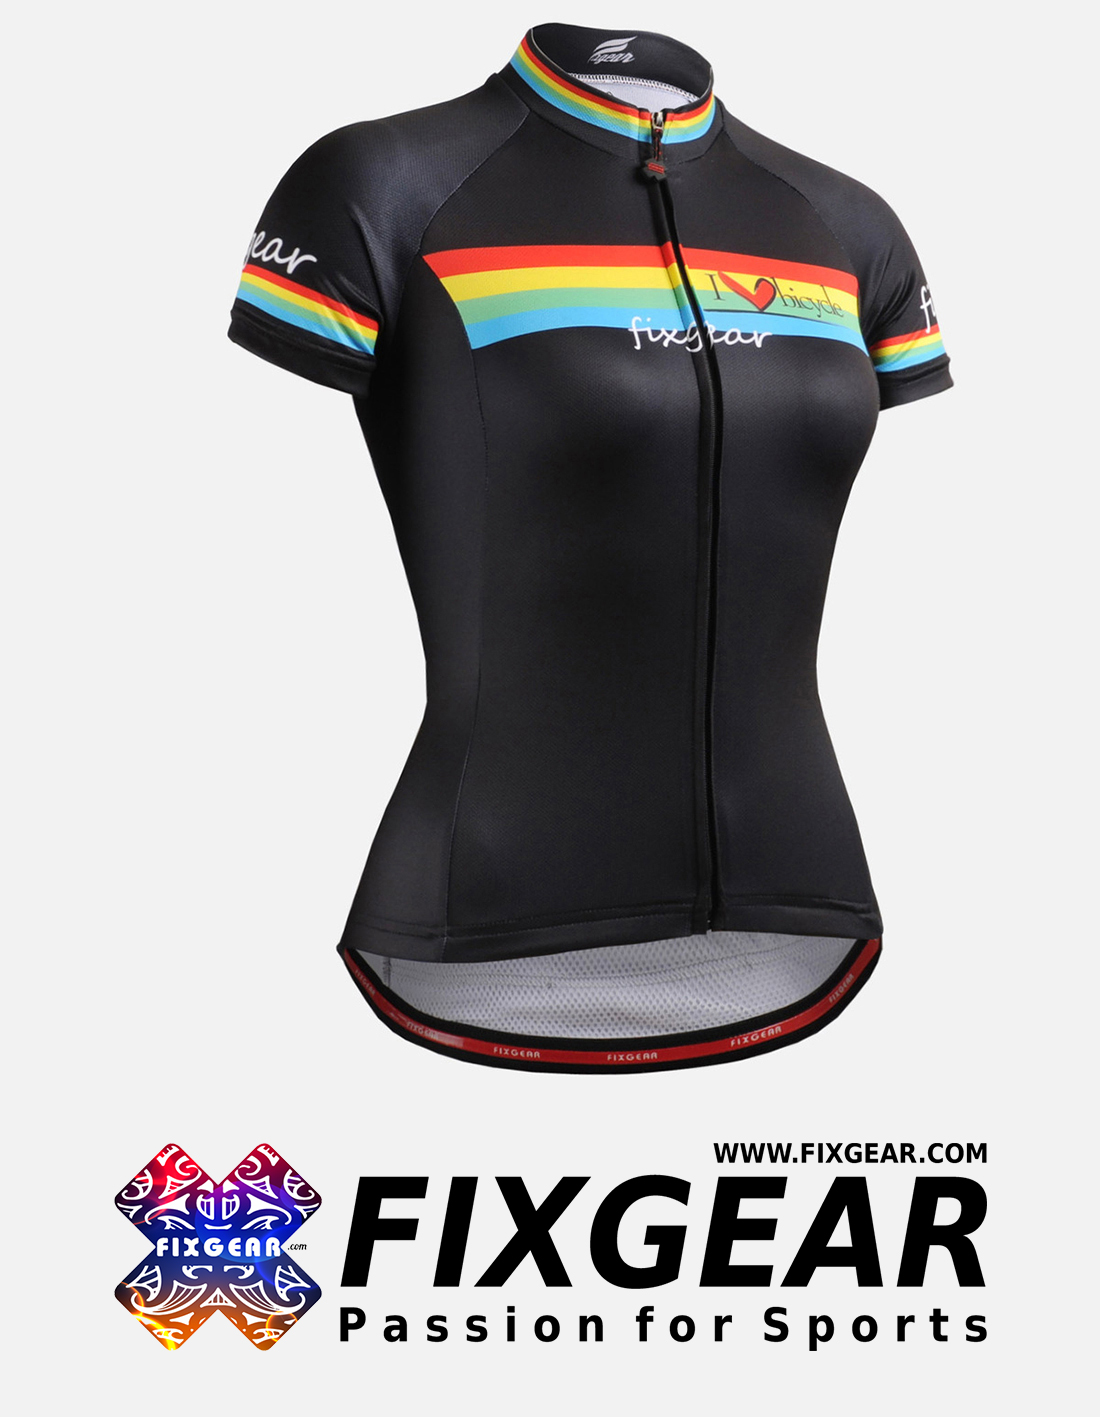 FIXGEAR CS-W202 Women's Short Sleeve Jersey